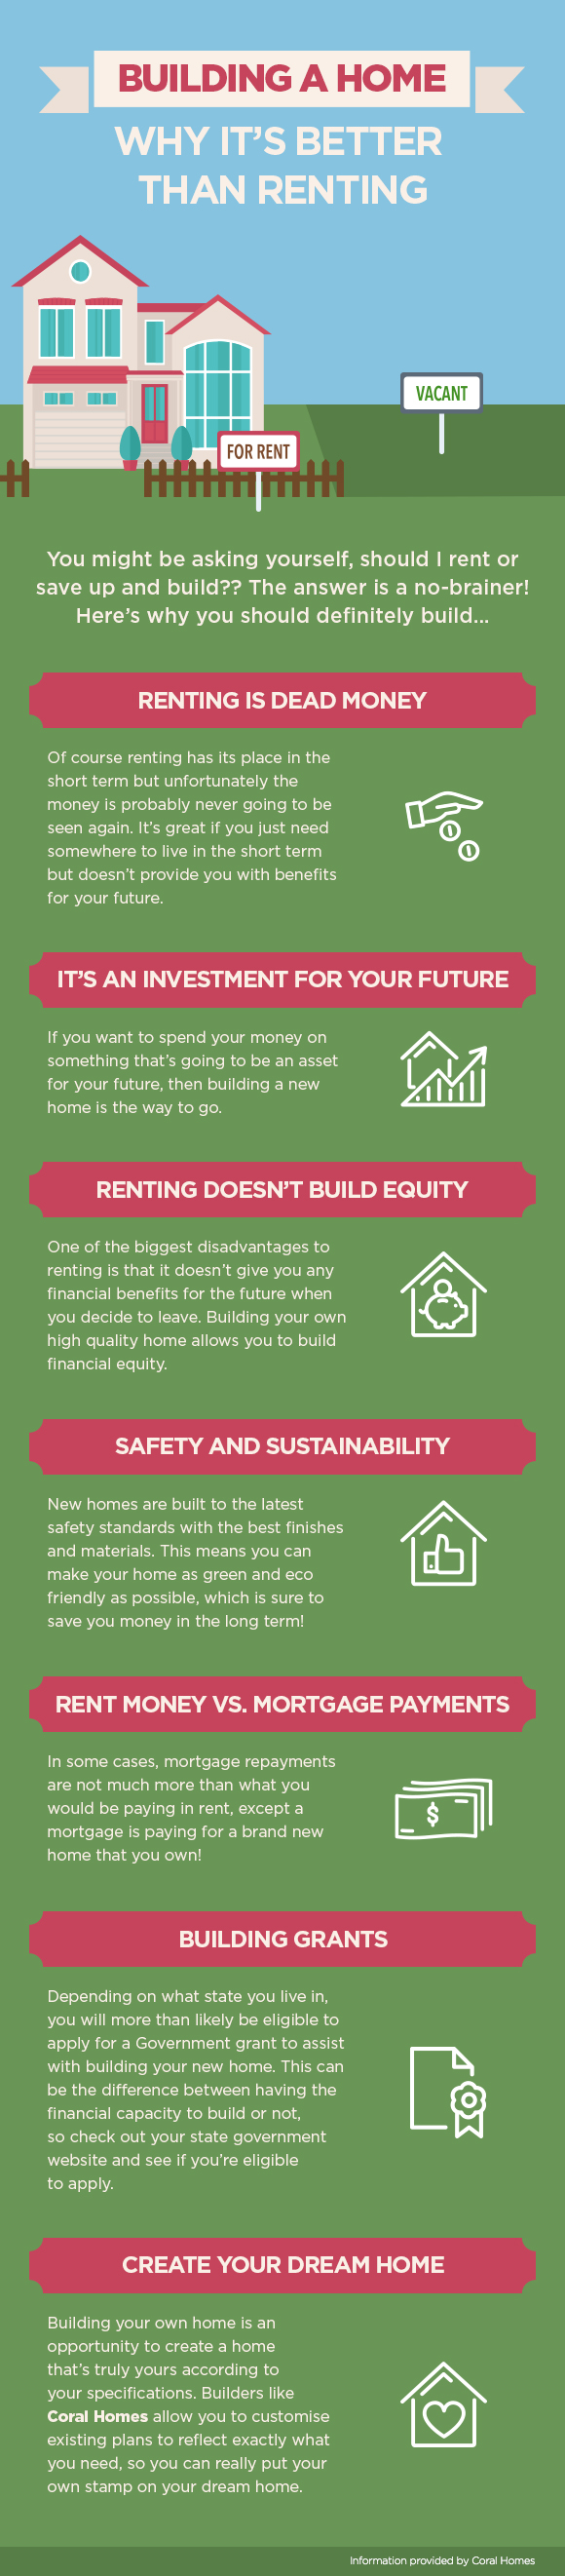 Why-Building-is-better-than-renting-infographic-plaza